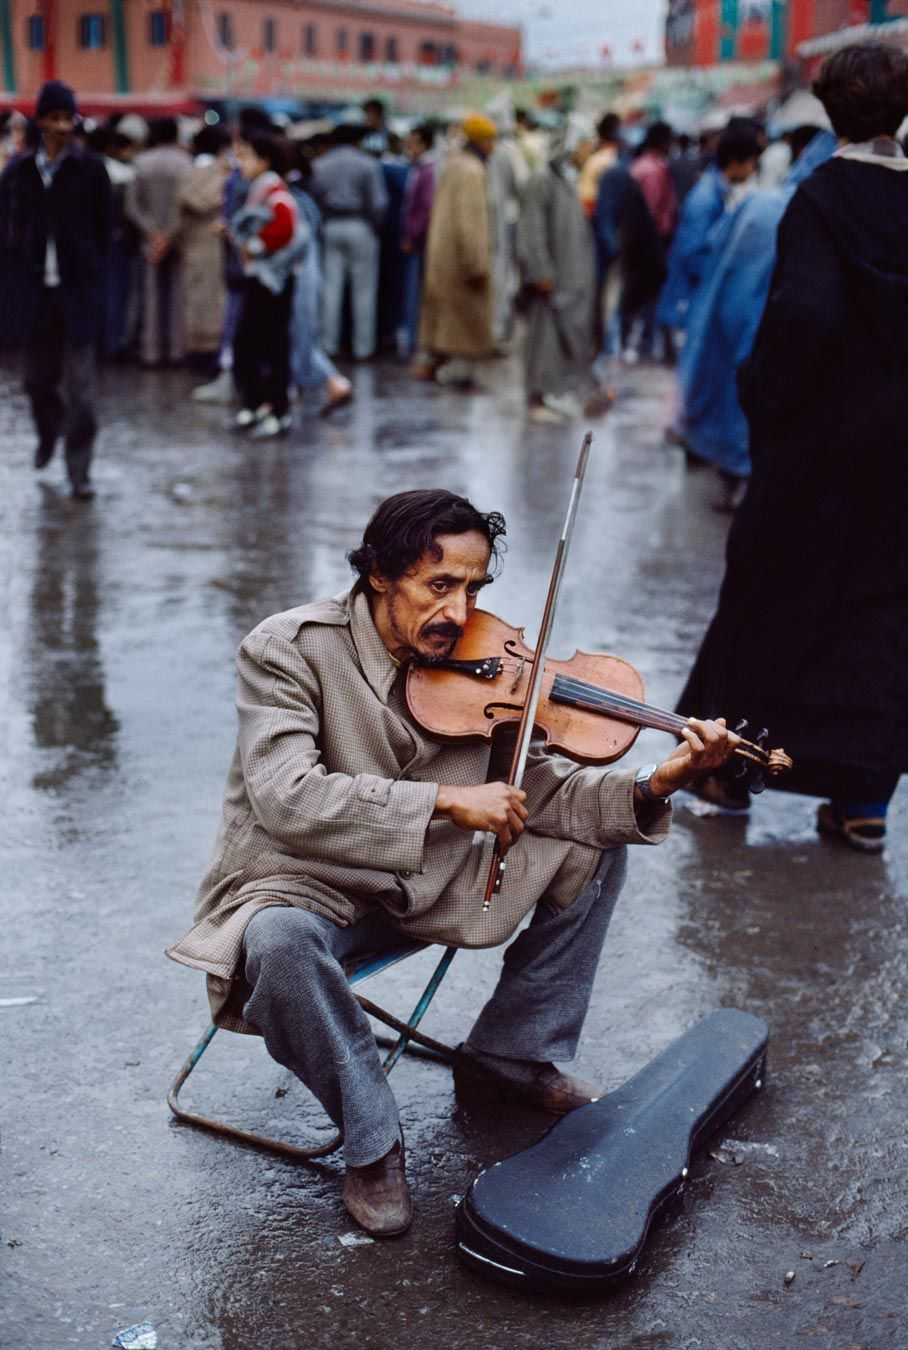 Street Musician Playing The Violin Marrakech Morocco Photo By Steve Mccurry Skateboard